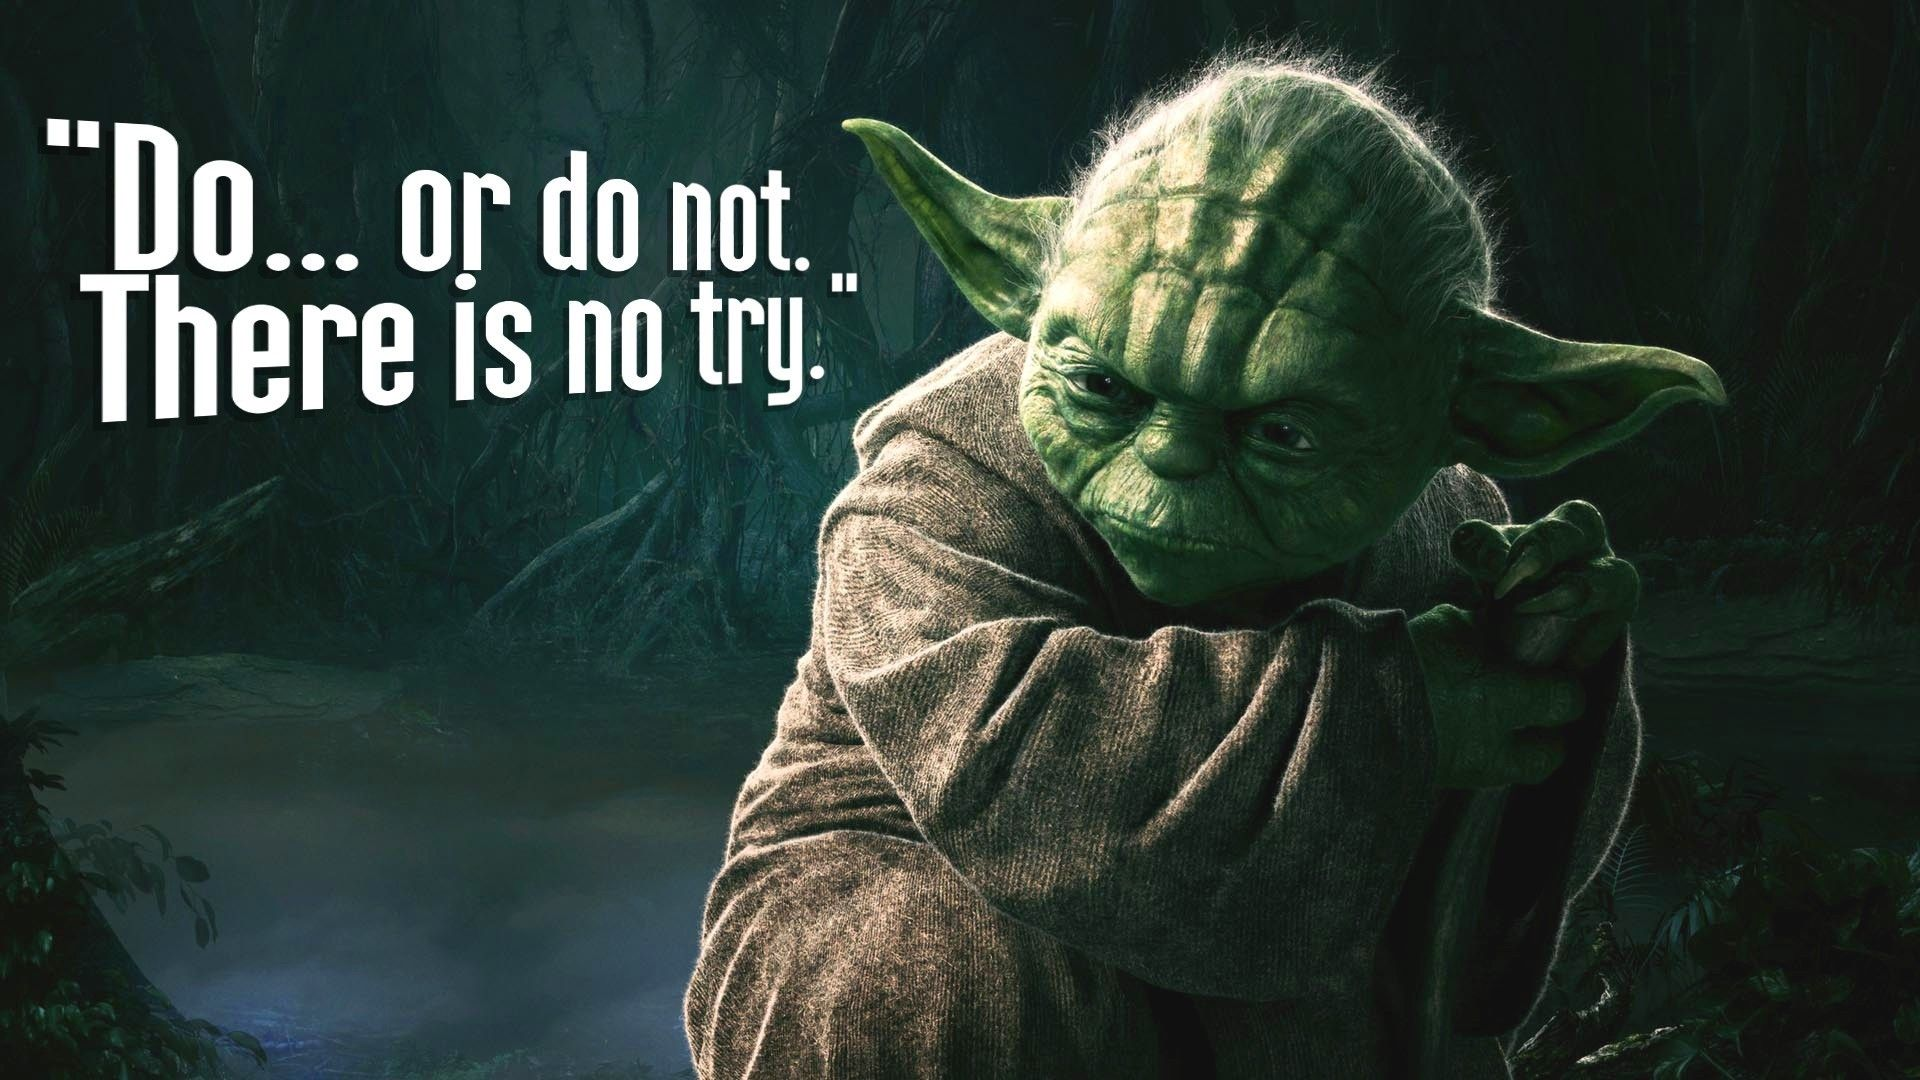 Yoda One Of The Greatest Philosophers Ever On Being Authentic